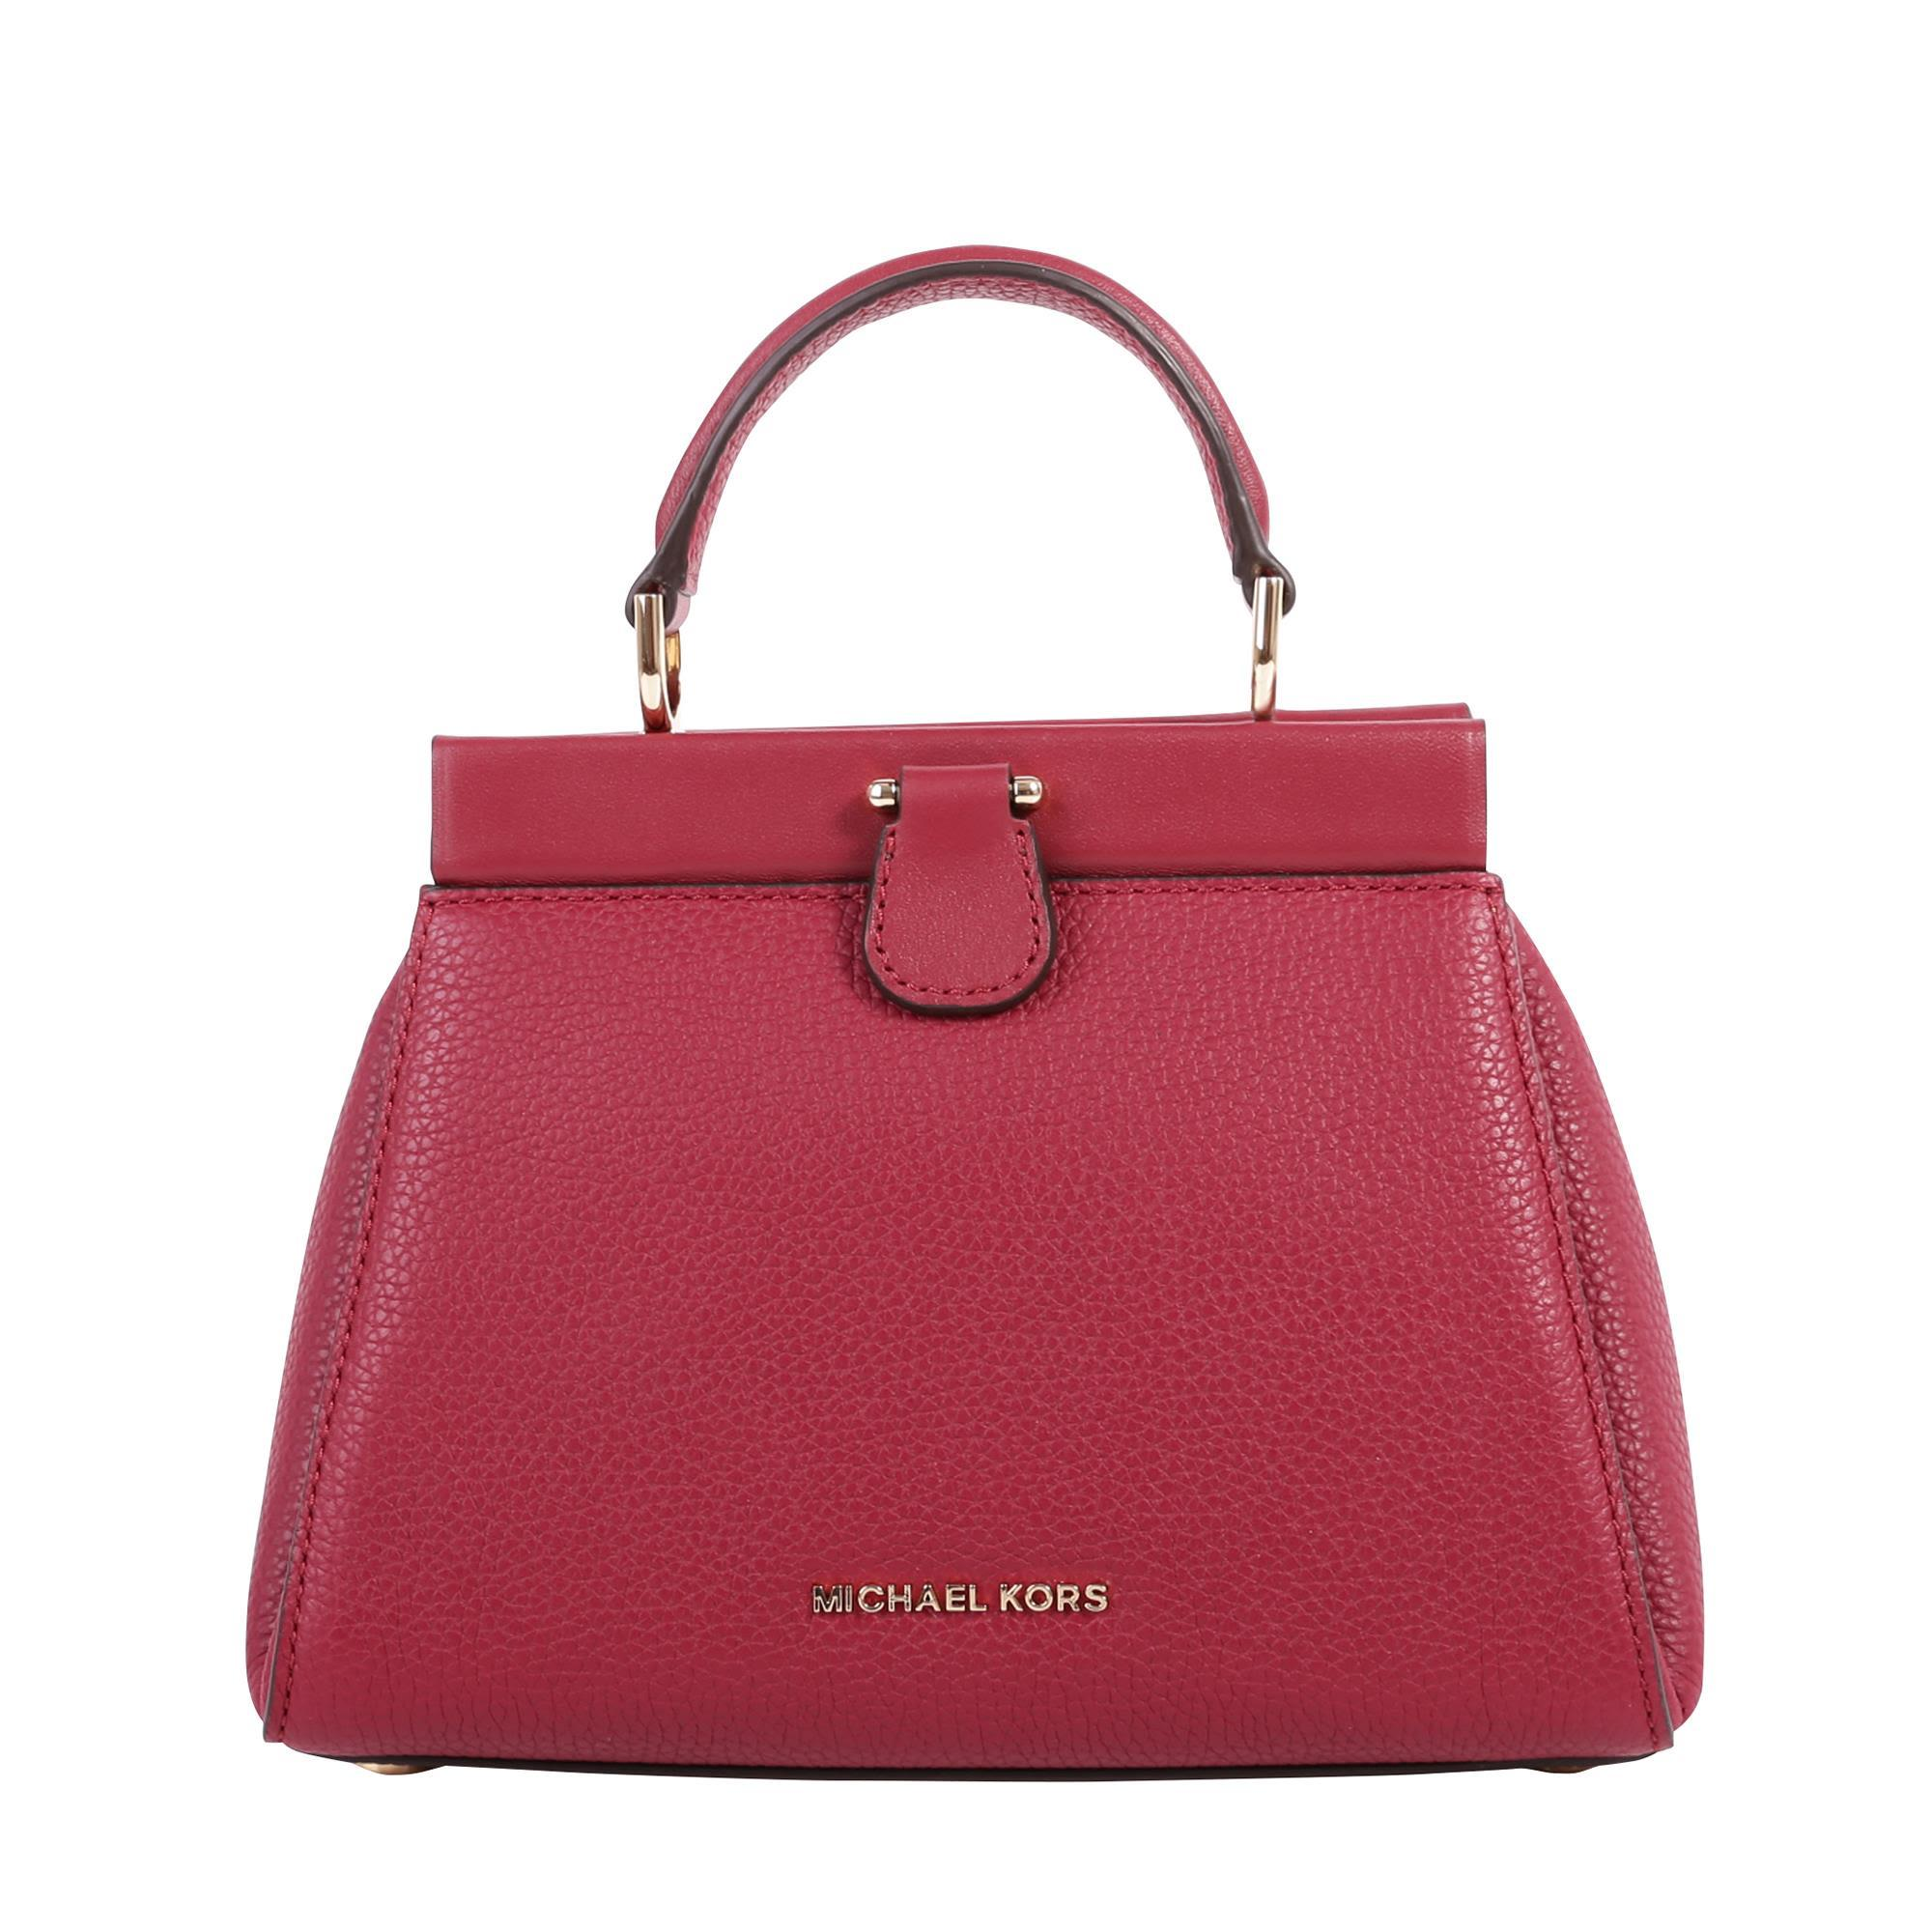 Michael Michael Kors Gramercy Grained Leather Bag In Oxblood